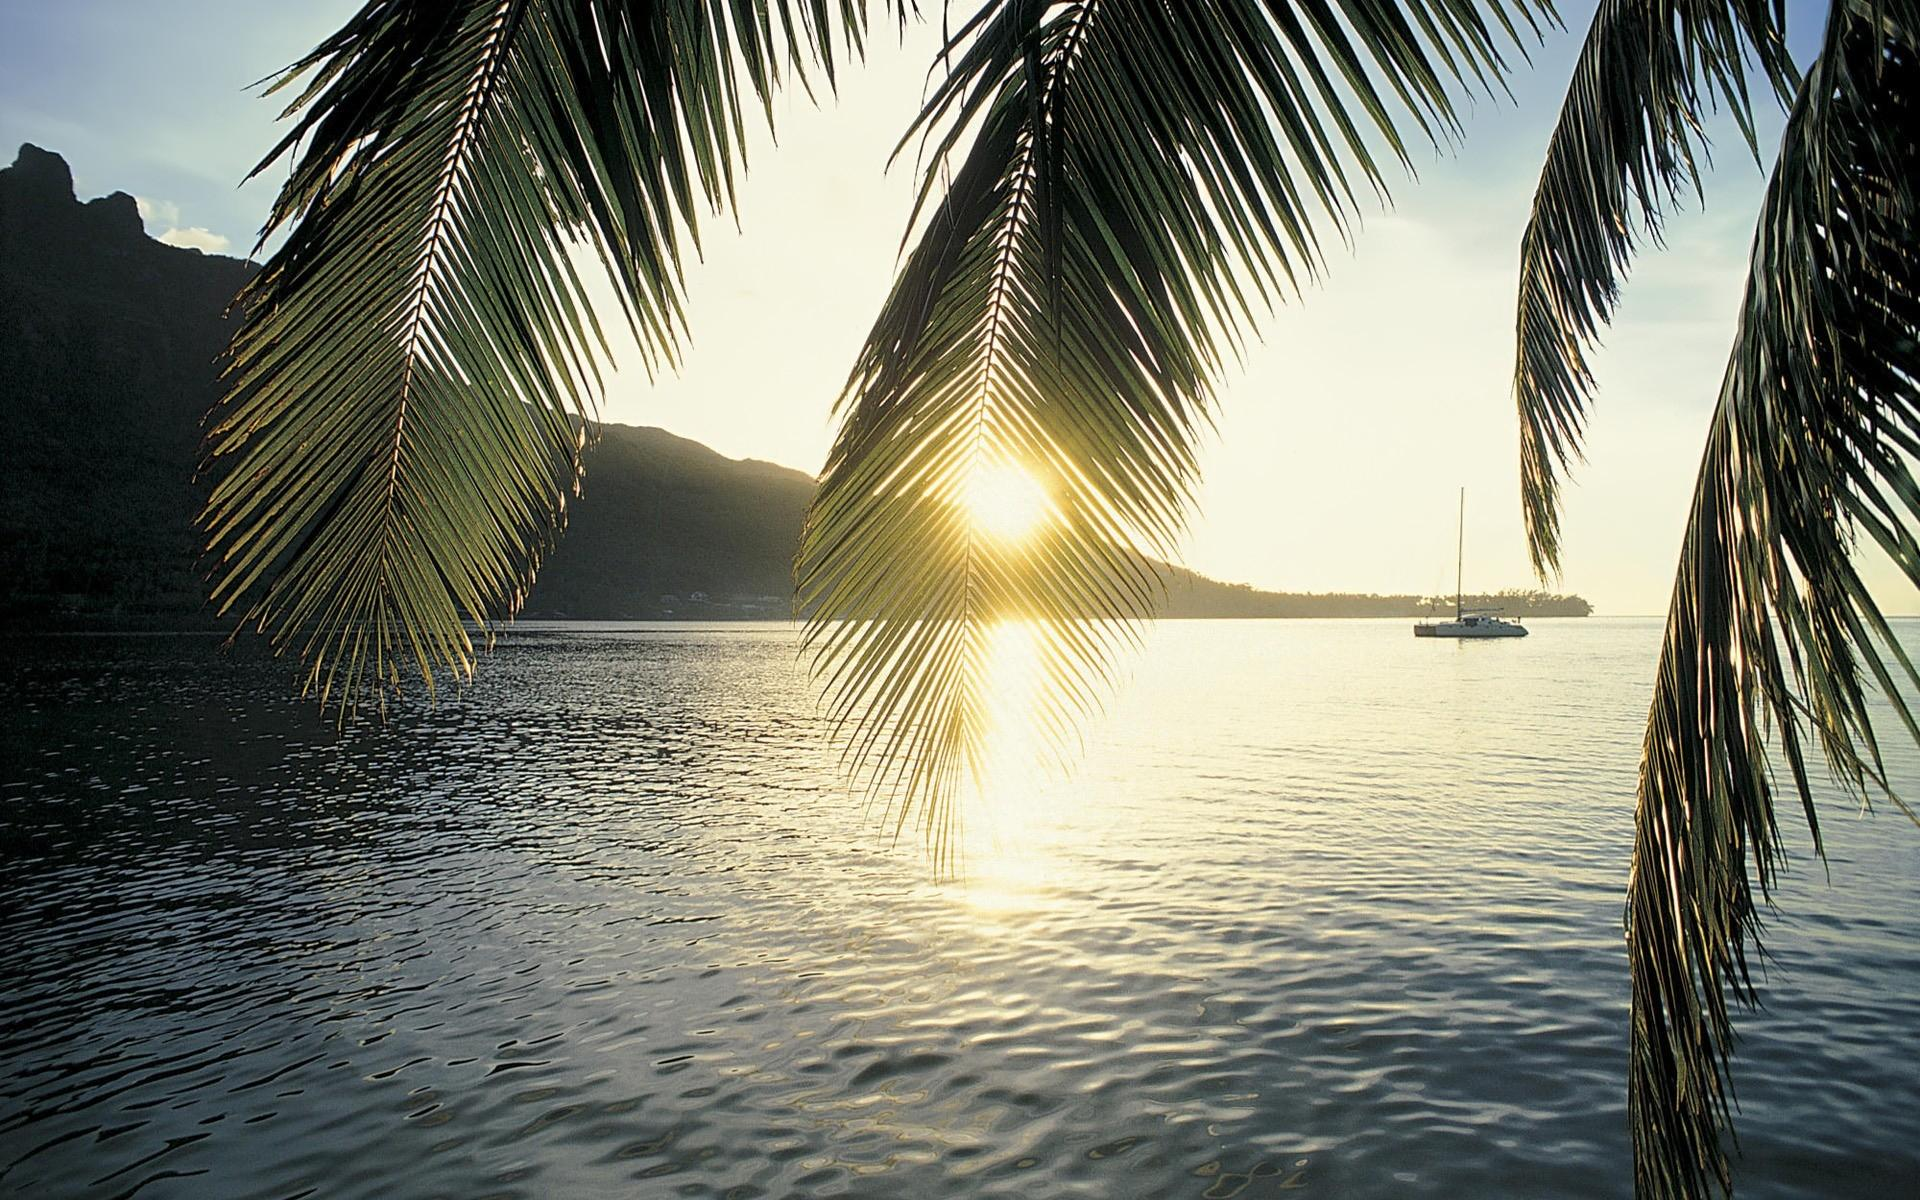 Palm Tree wallpapers ·① Download free HD wallpapers for desktop and